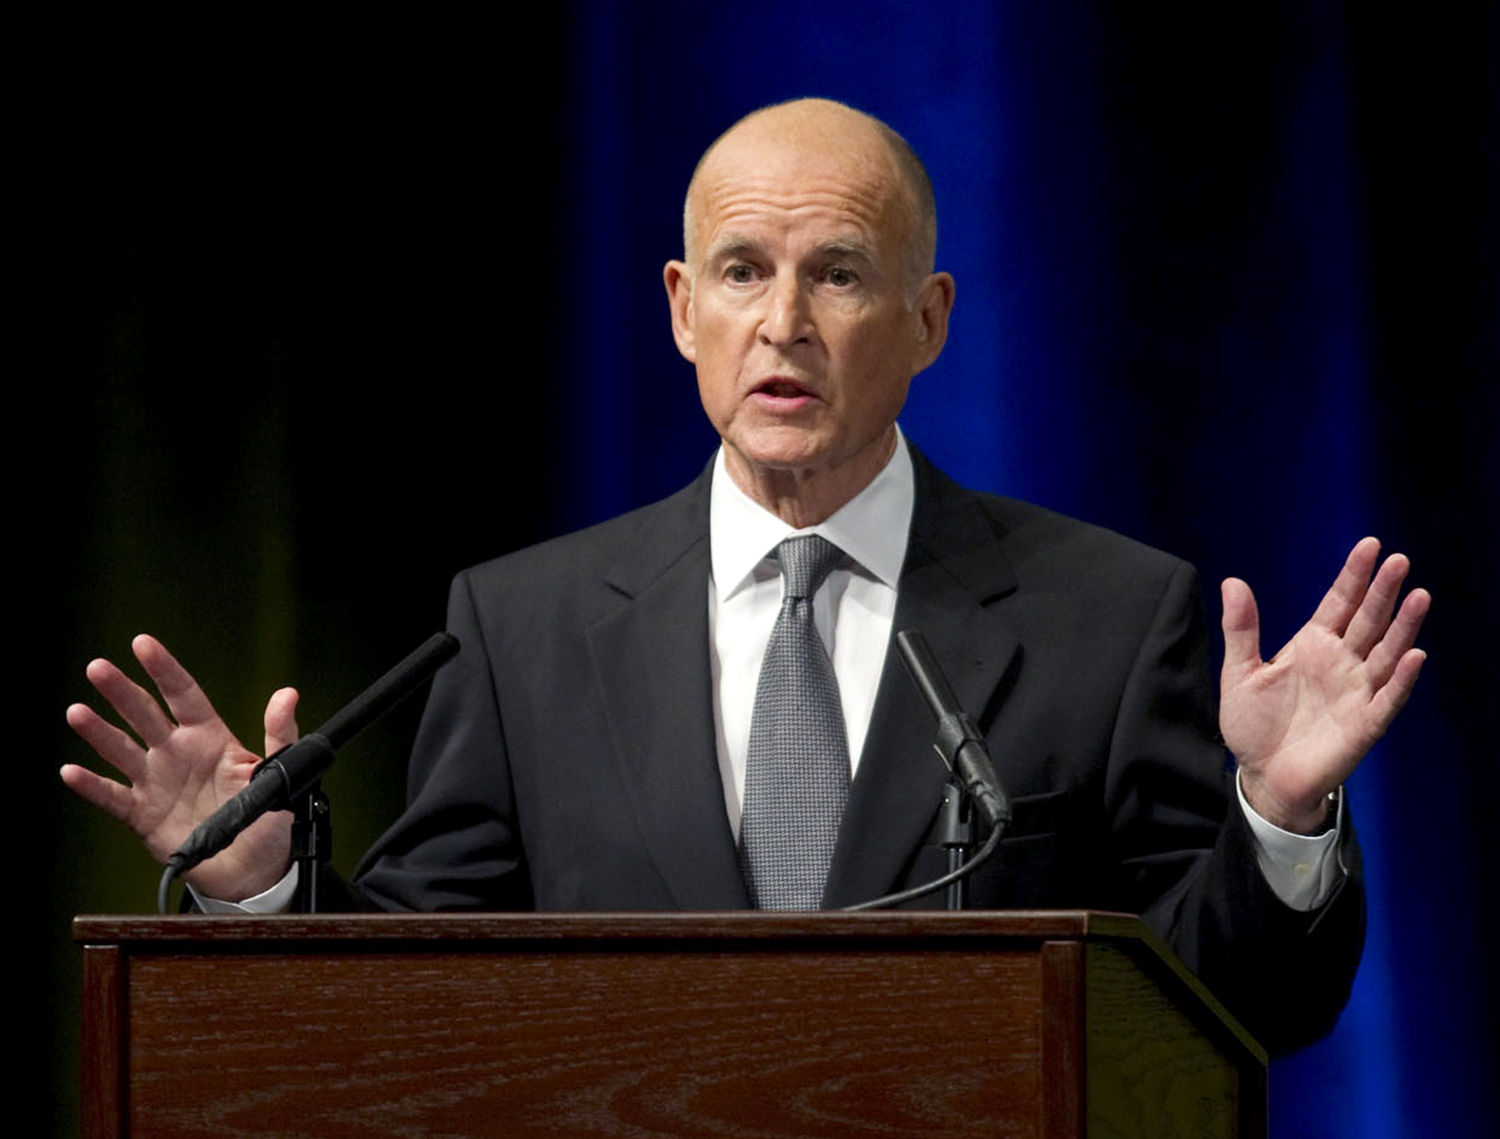 California gubernatorial candidate Jerry Brown debates Meg Whitman in Davis, California